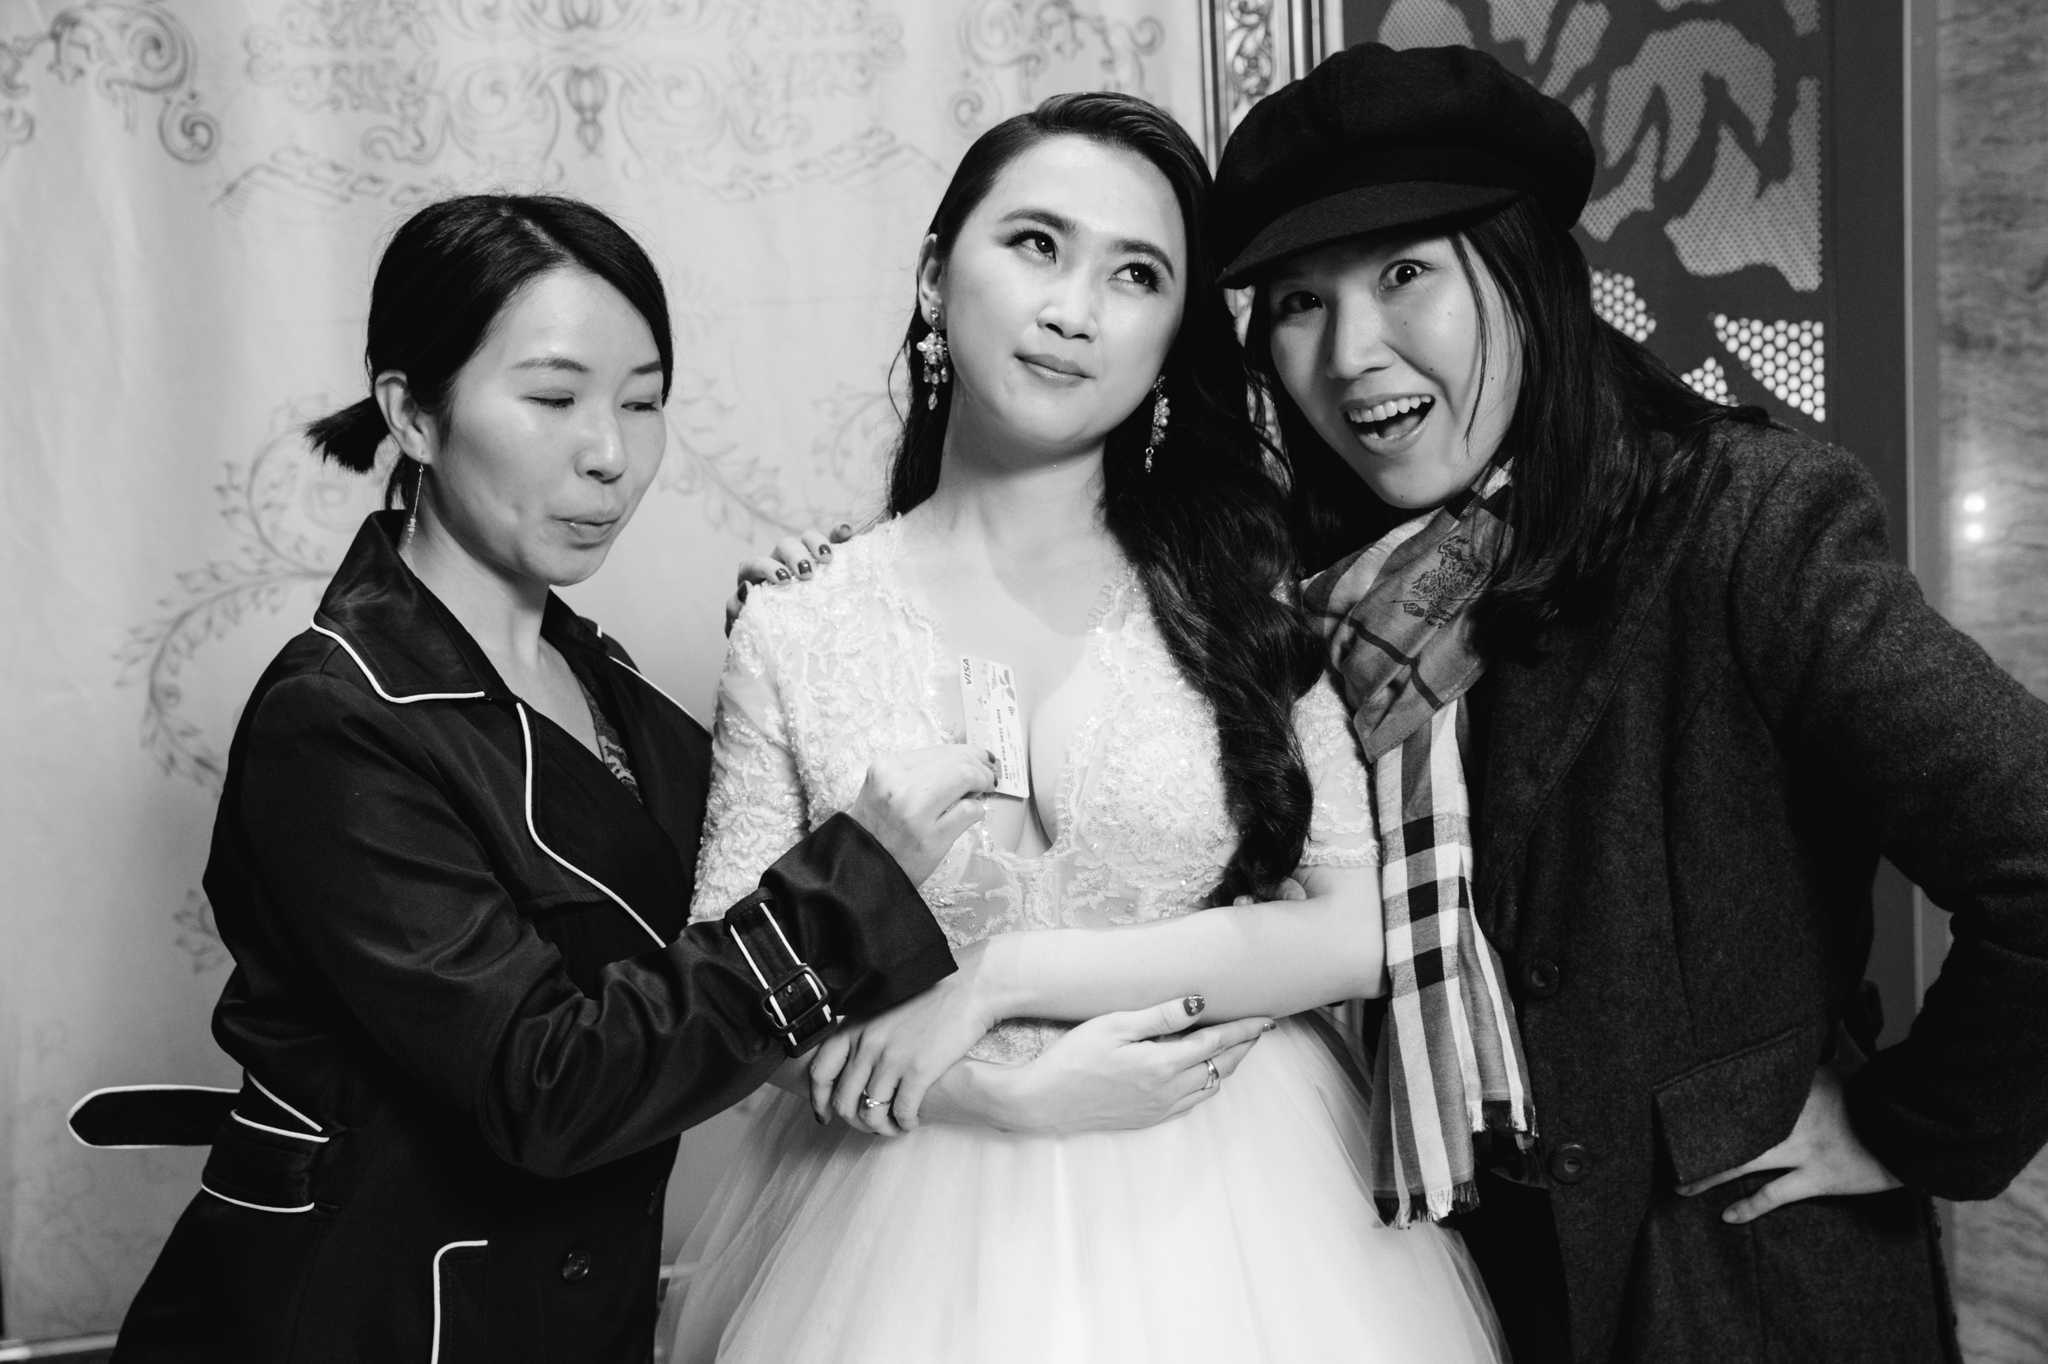 Keddy+Richard-wedding-新莊頤品飯店-226.jpg